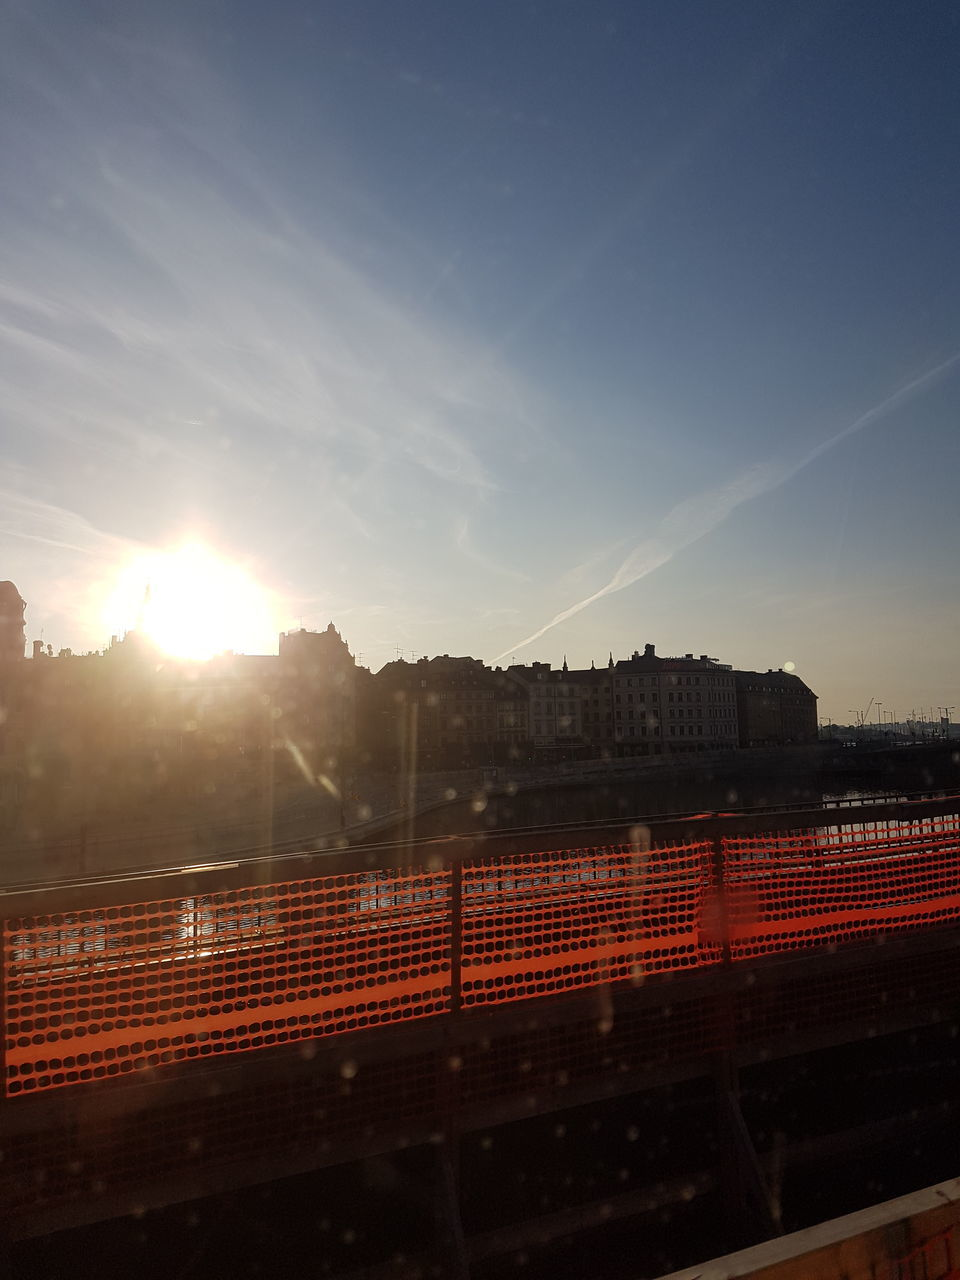 sunset, sun, sunlight, lens flare, no people, outdoors, sky, scenics, architecture, nature, day, city